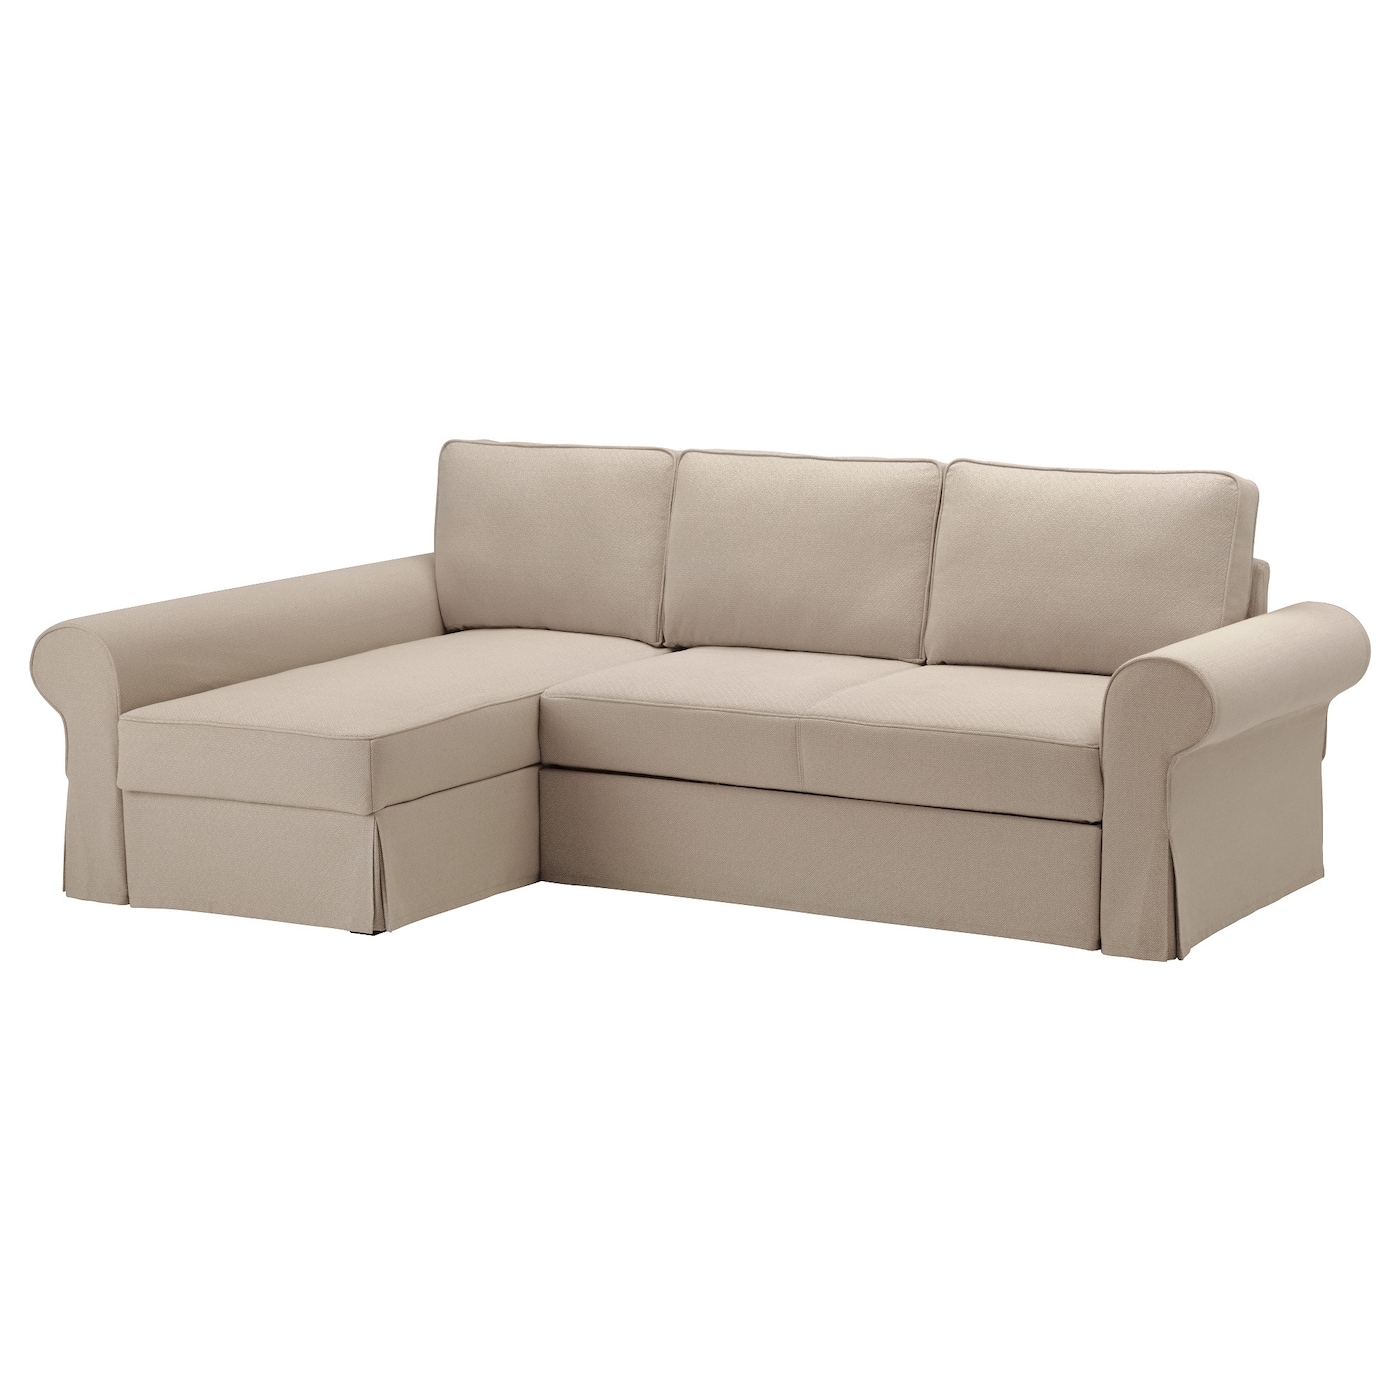 Backabro sofa bed with chaise longue hylte beige ikea for Chaise bed sofa